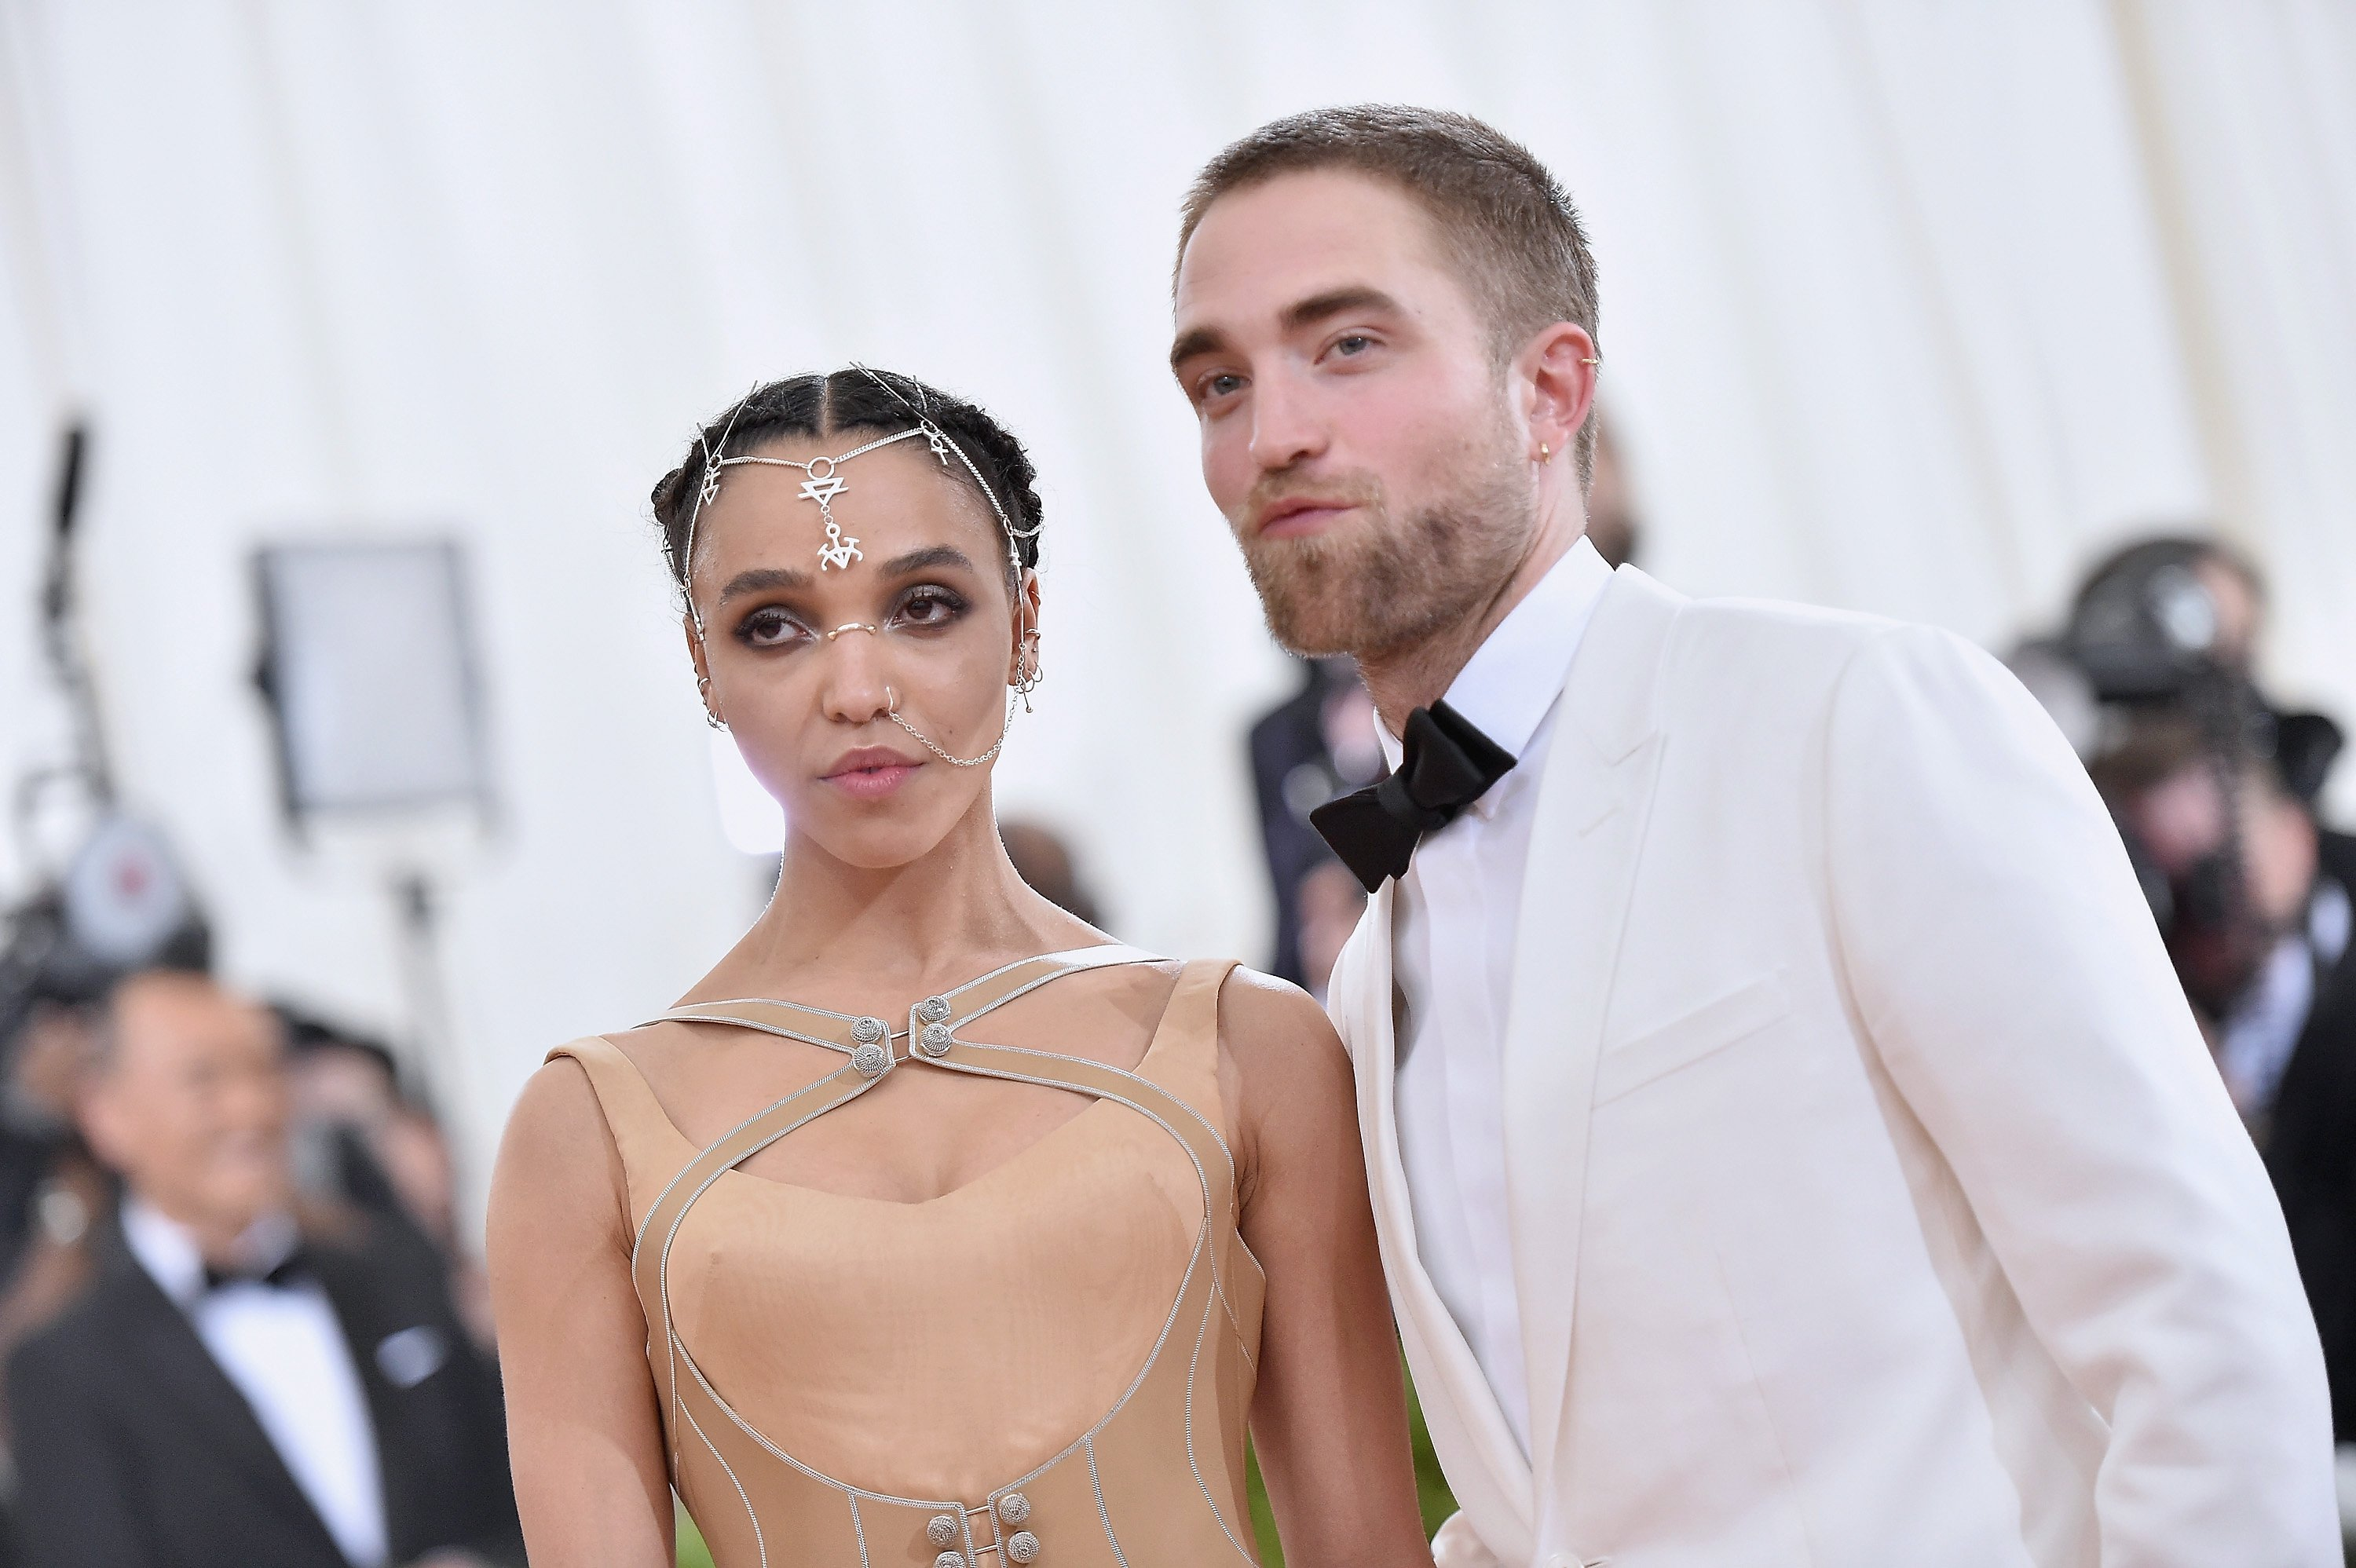 FKA Twigs and Robert Pattinson at the Costume Institute Gala at Metropolitan Museum of Art on May 2, 2016 in New York City. Source: Getty Images